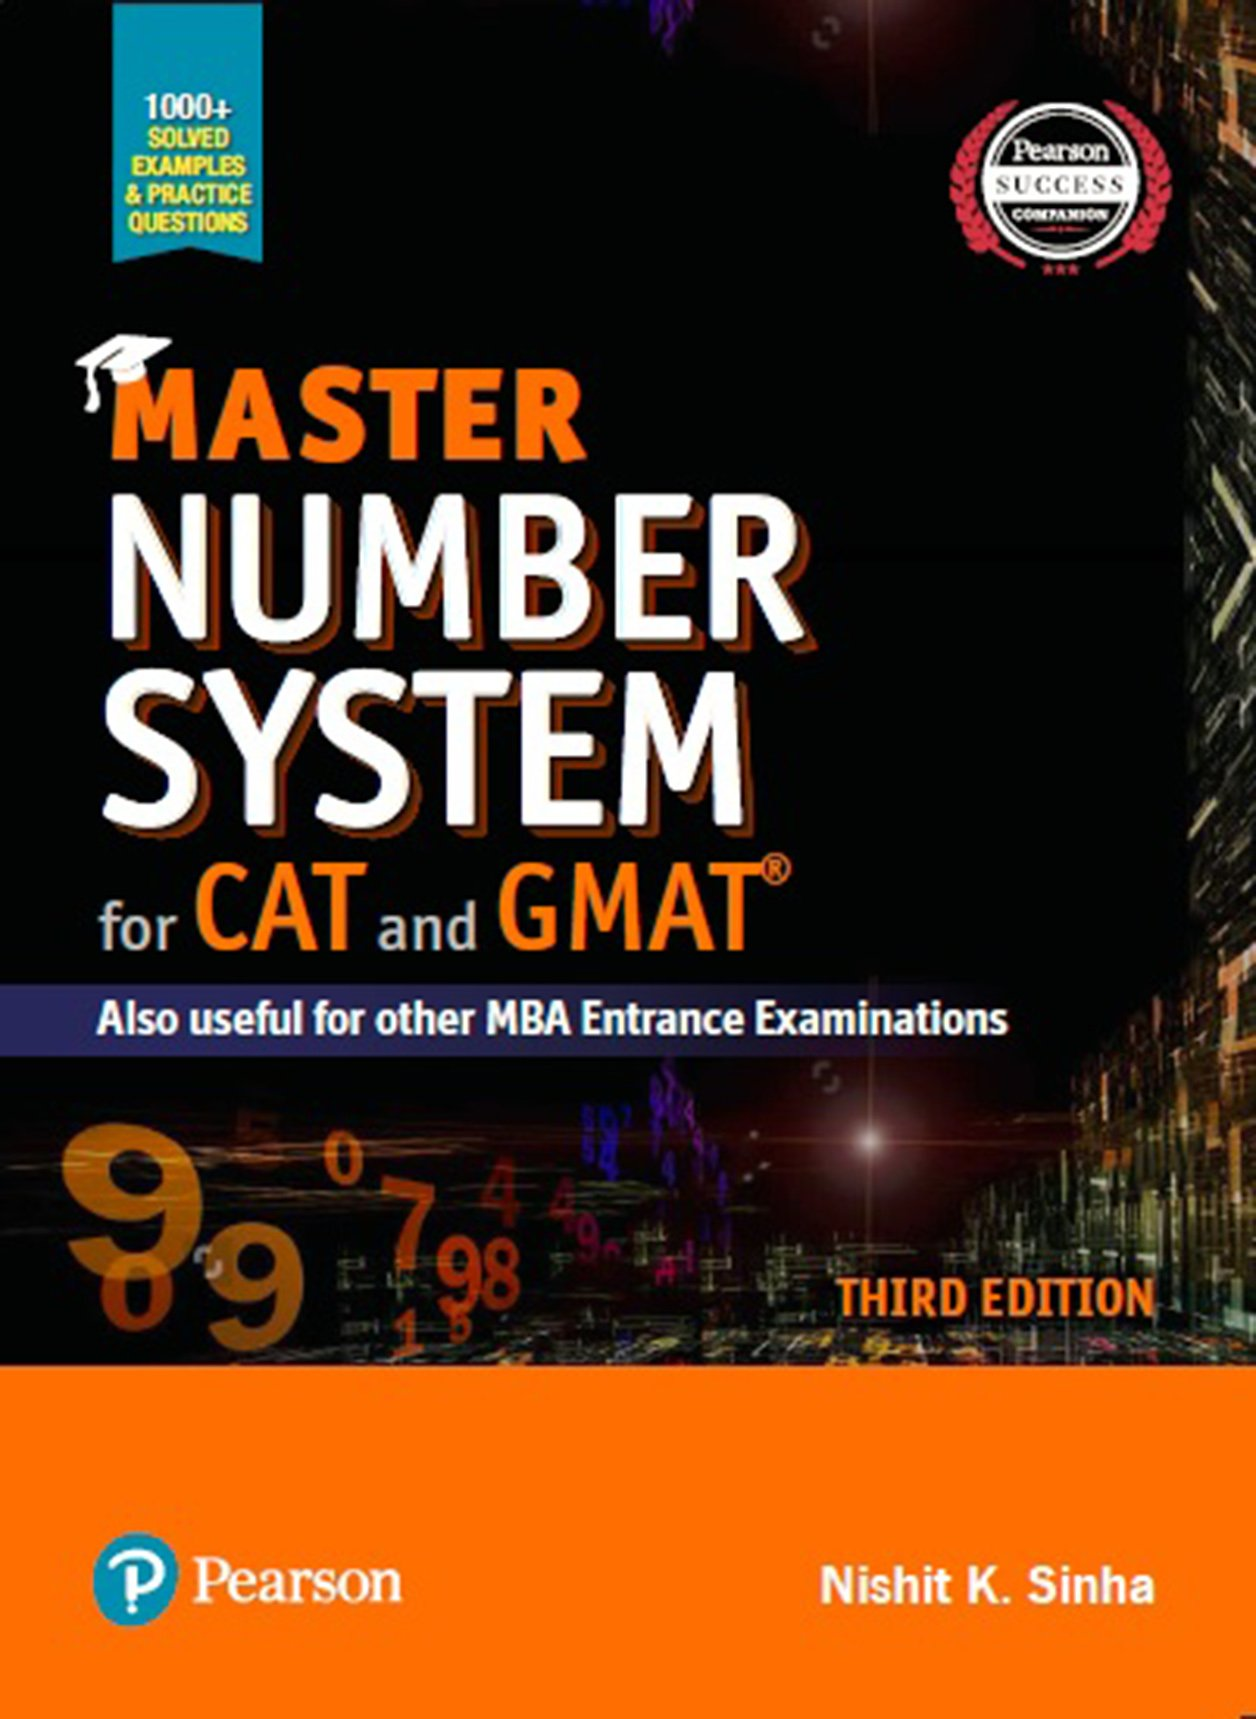 Master Number System for the CAT and GMAT  (Also Useful for other MBA Entrance Examinations) Paperback – 26 May 2017